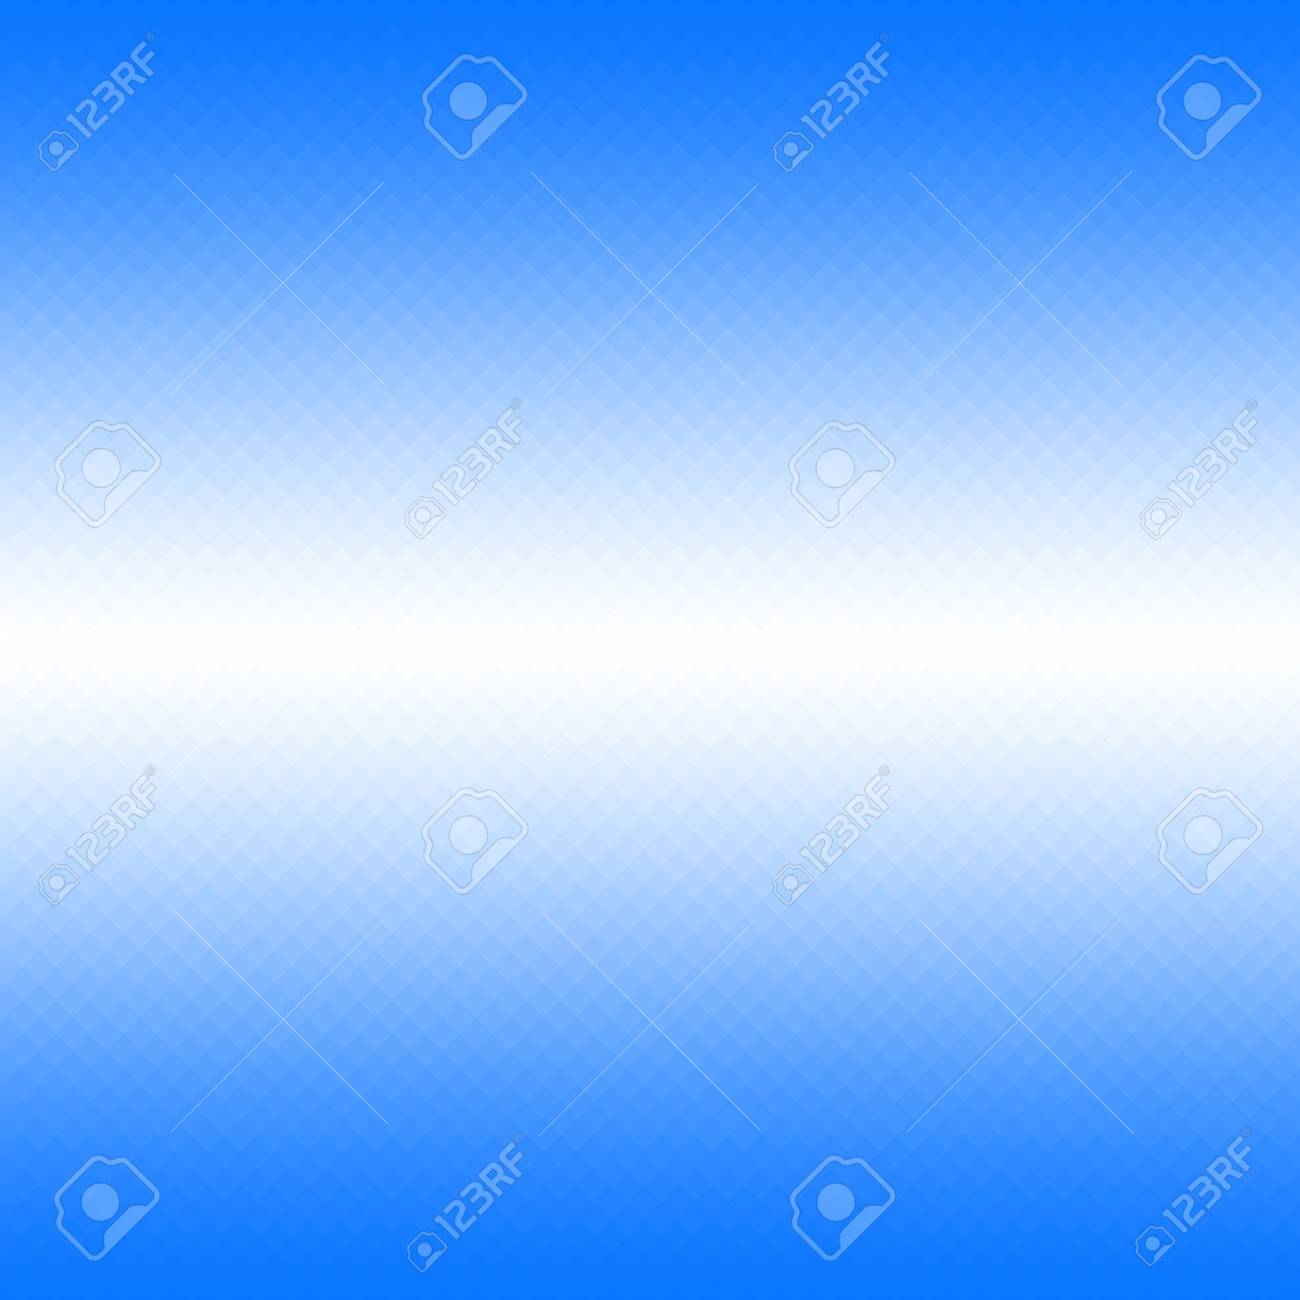 Abstract pixel background Stock Photo - 21796418